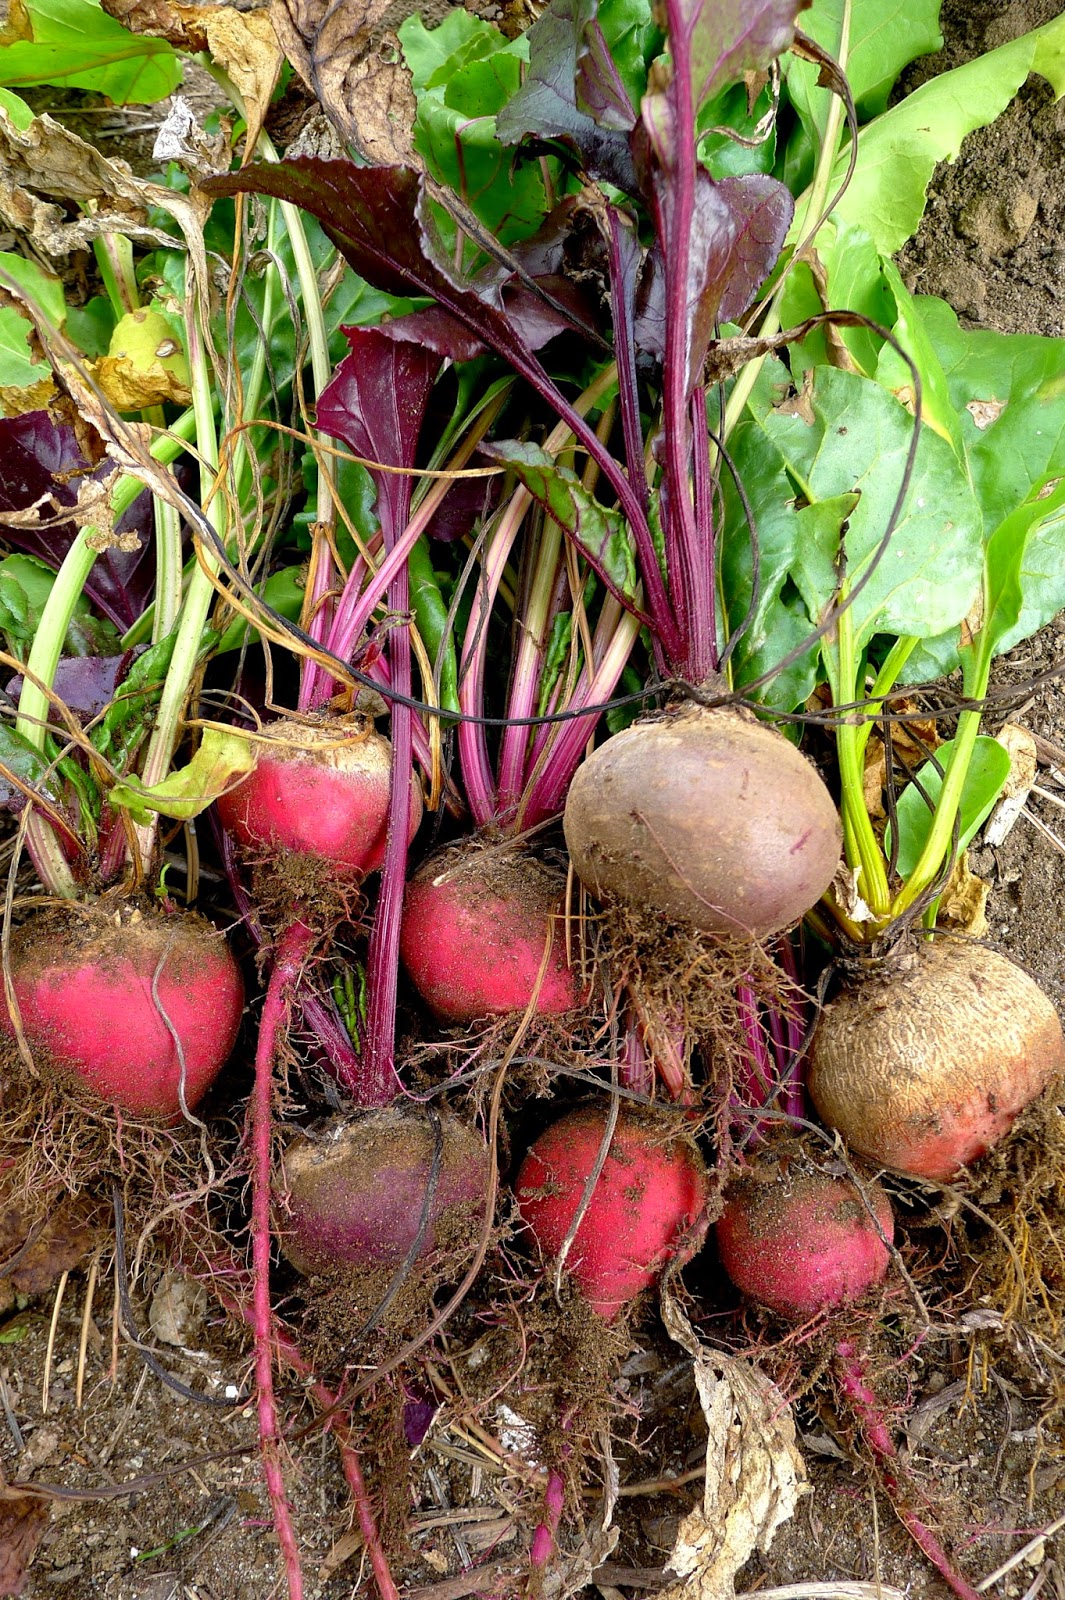 Assorted beets